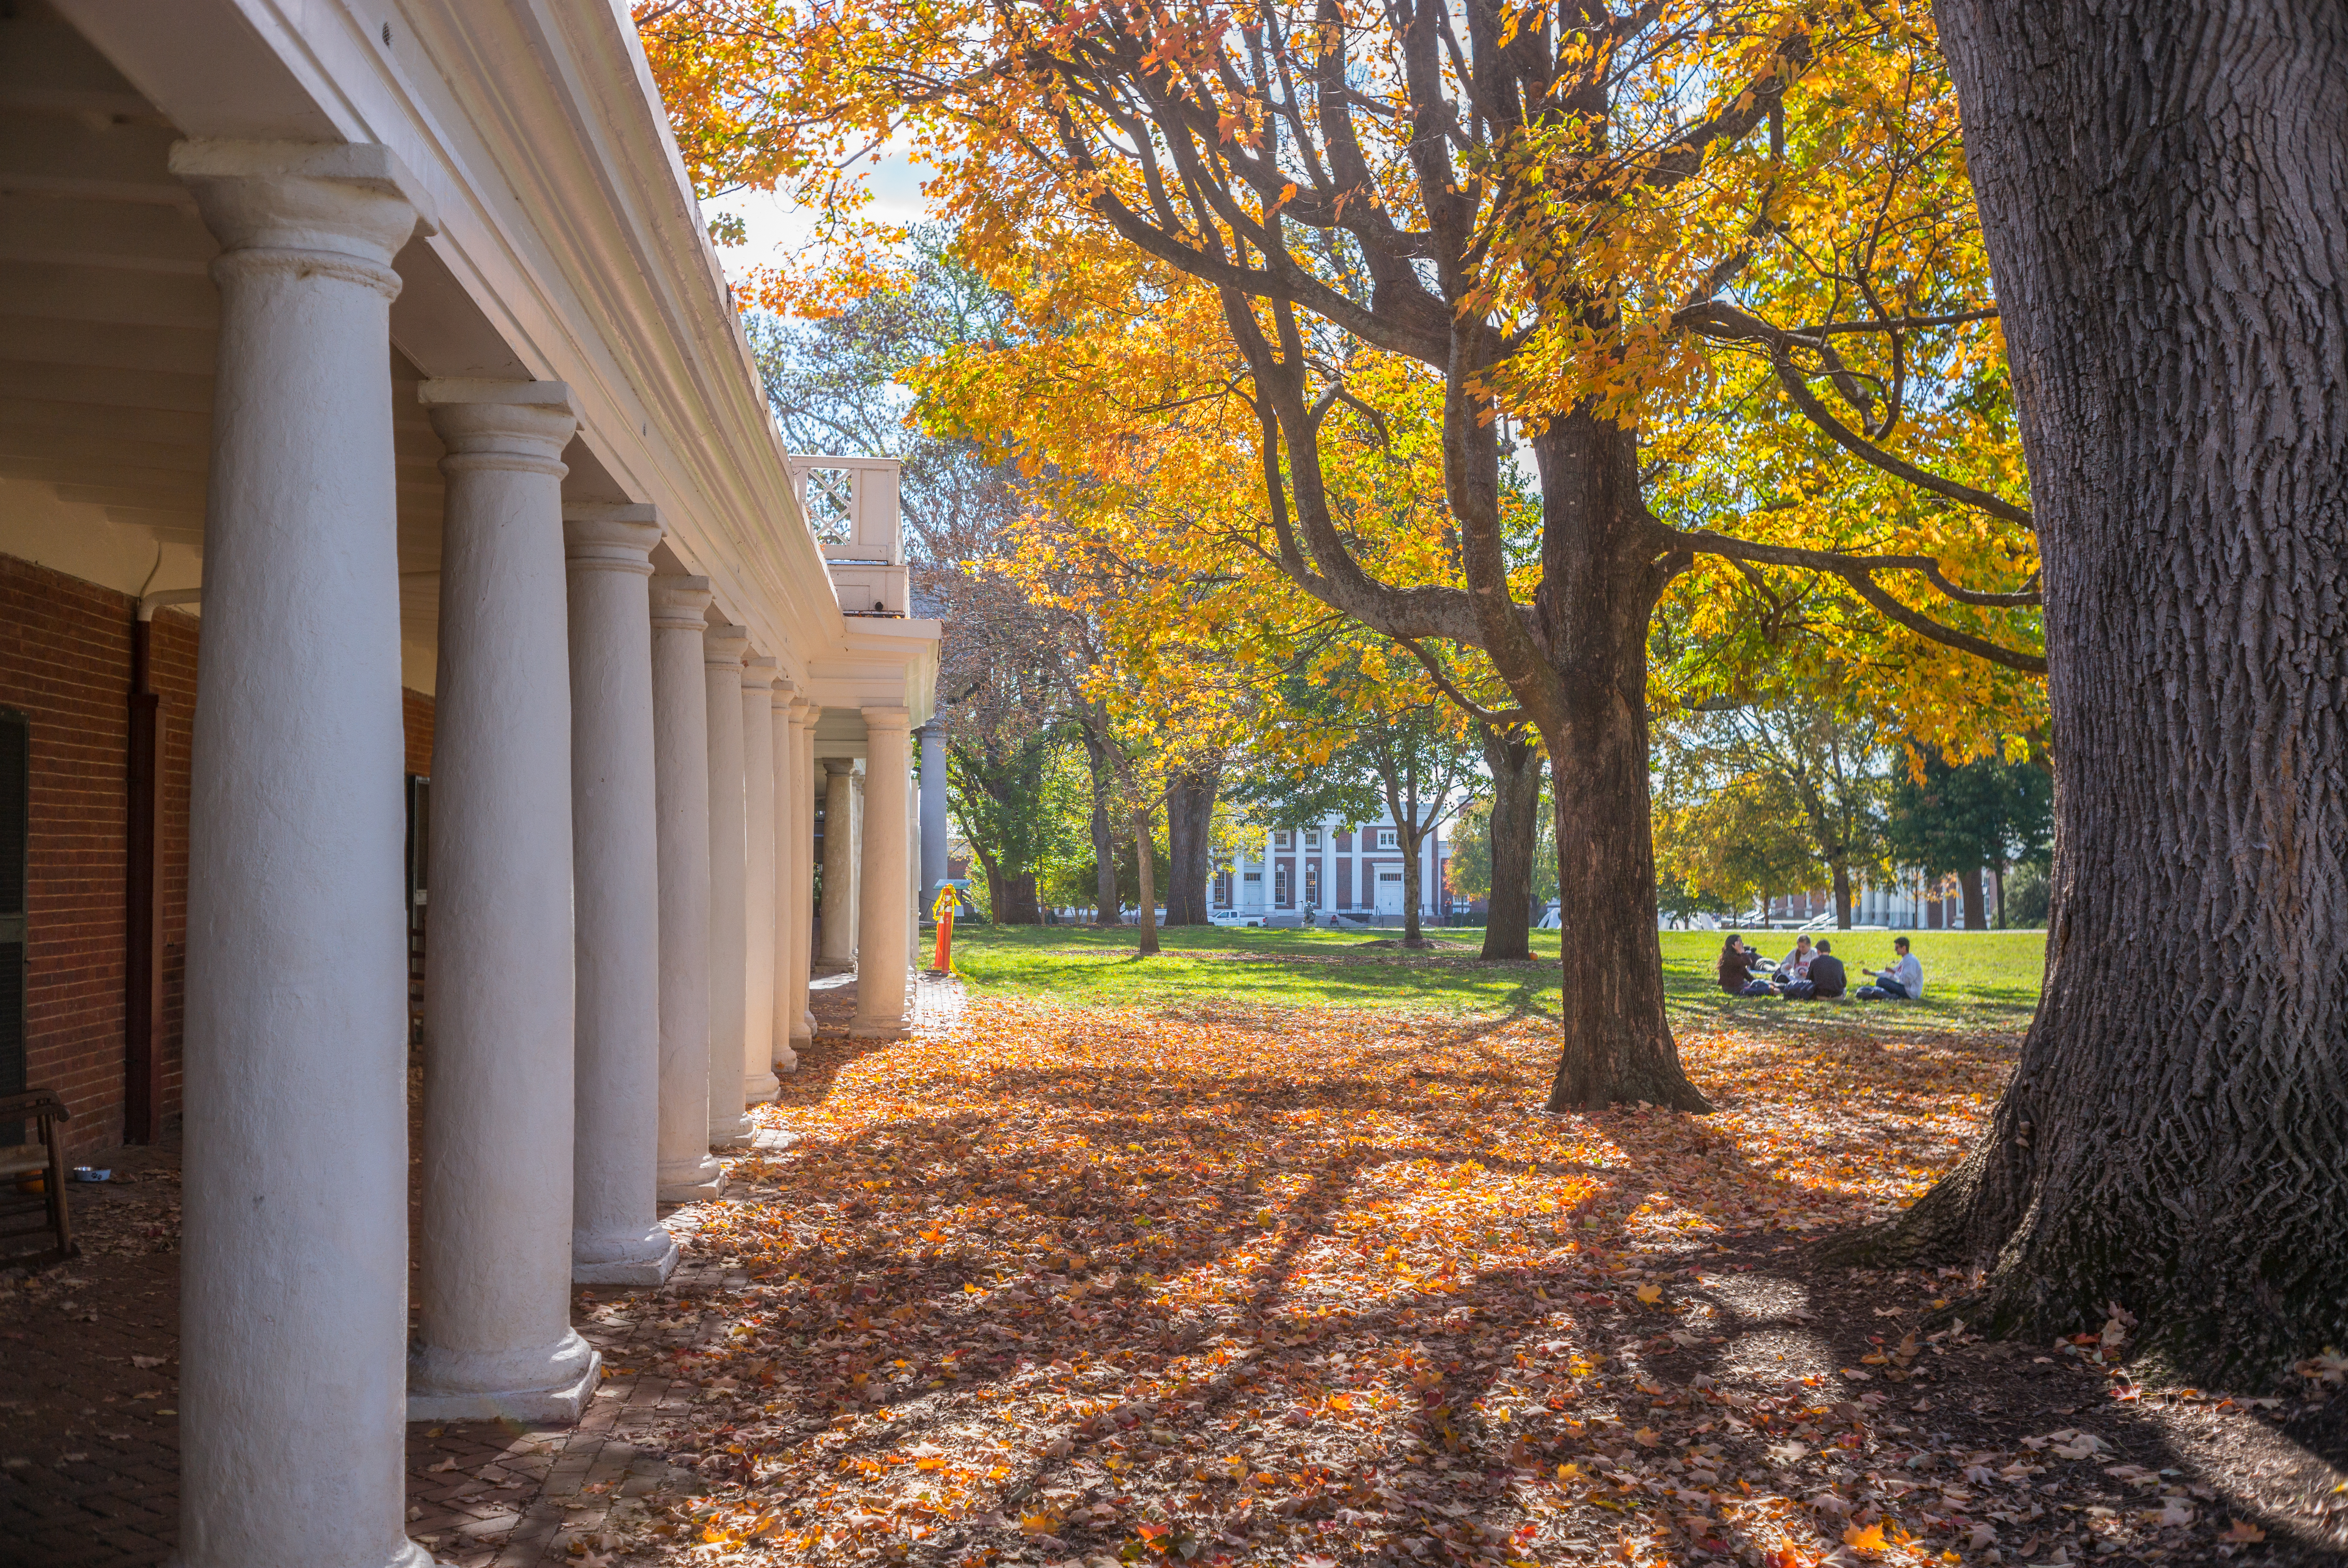 Photo of the Lawn during fall with bright yellow leaves falling from a tree